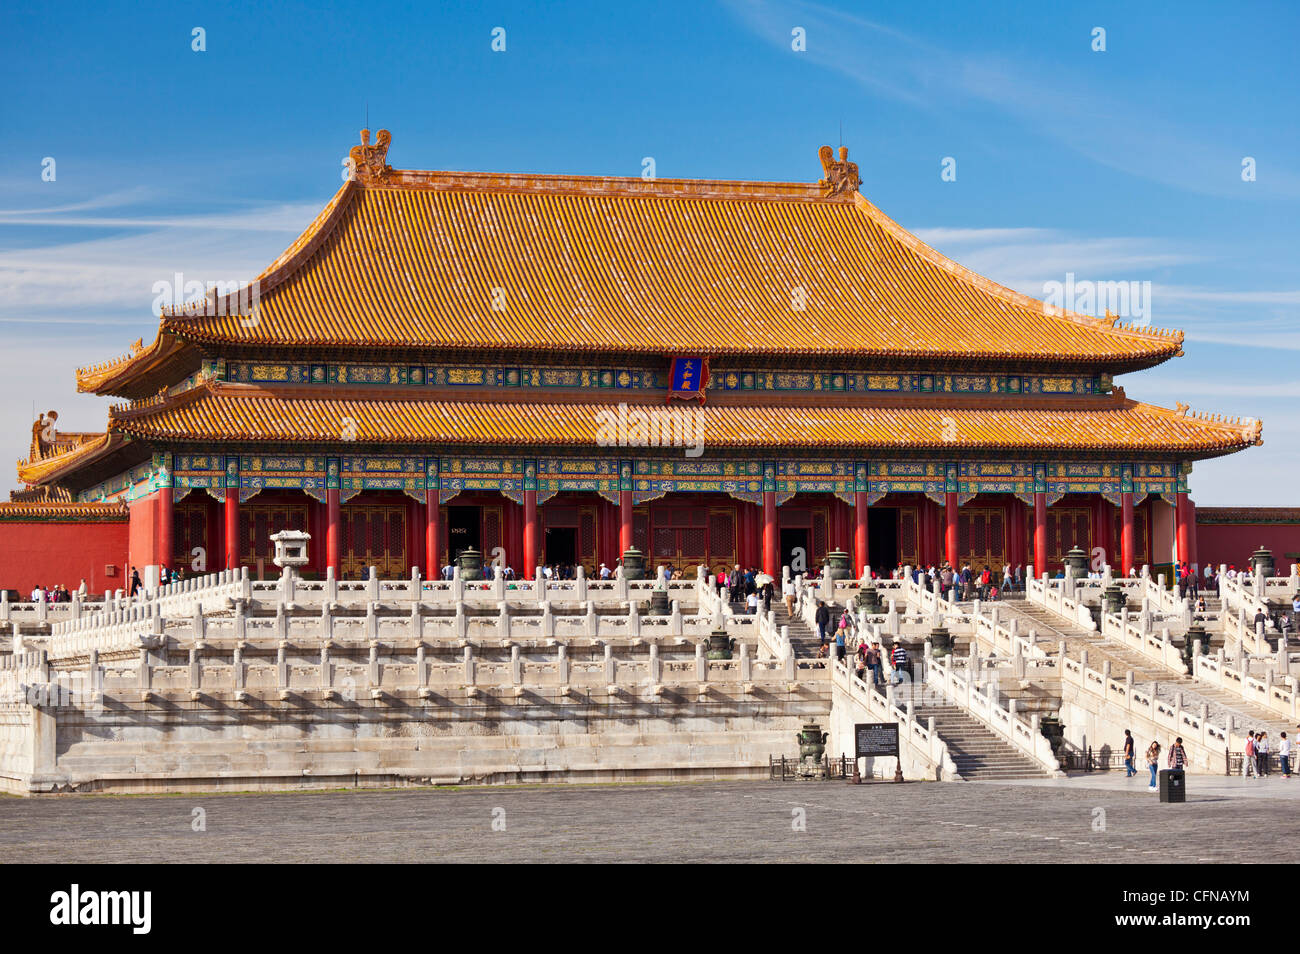 Hall of Supreme Harmony, Outer Court, Forbidden City, Beijing, China, Asia - Stock Image